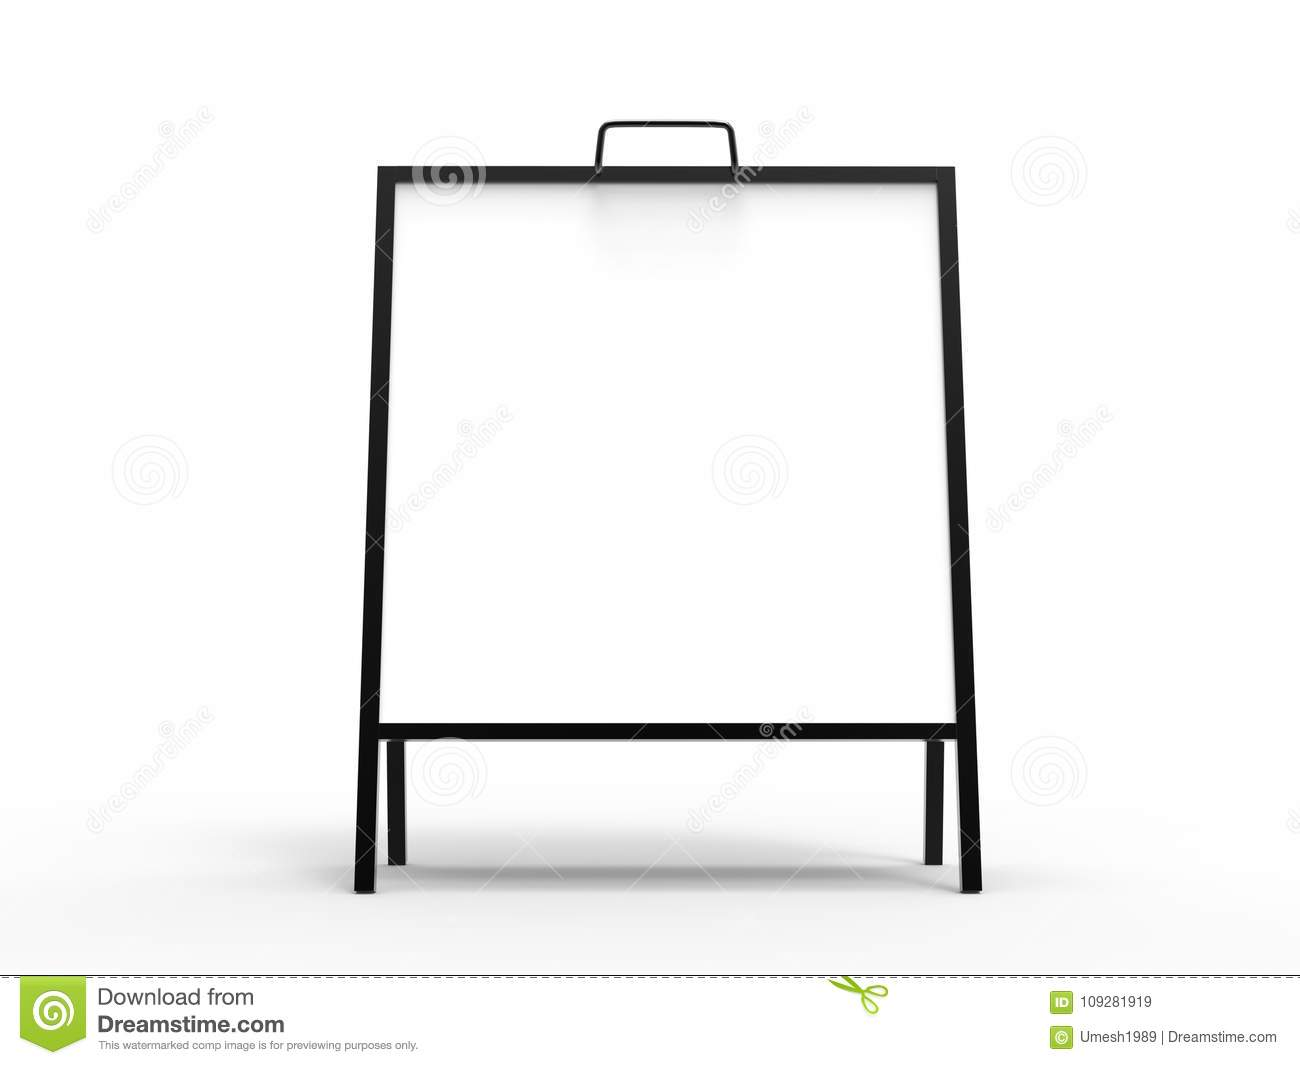 Blank white square A frame metallic outdoor advertising stand mockup set, isolated, 3d rendering. Clear street signage board mock